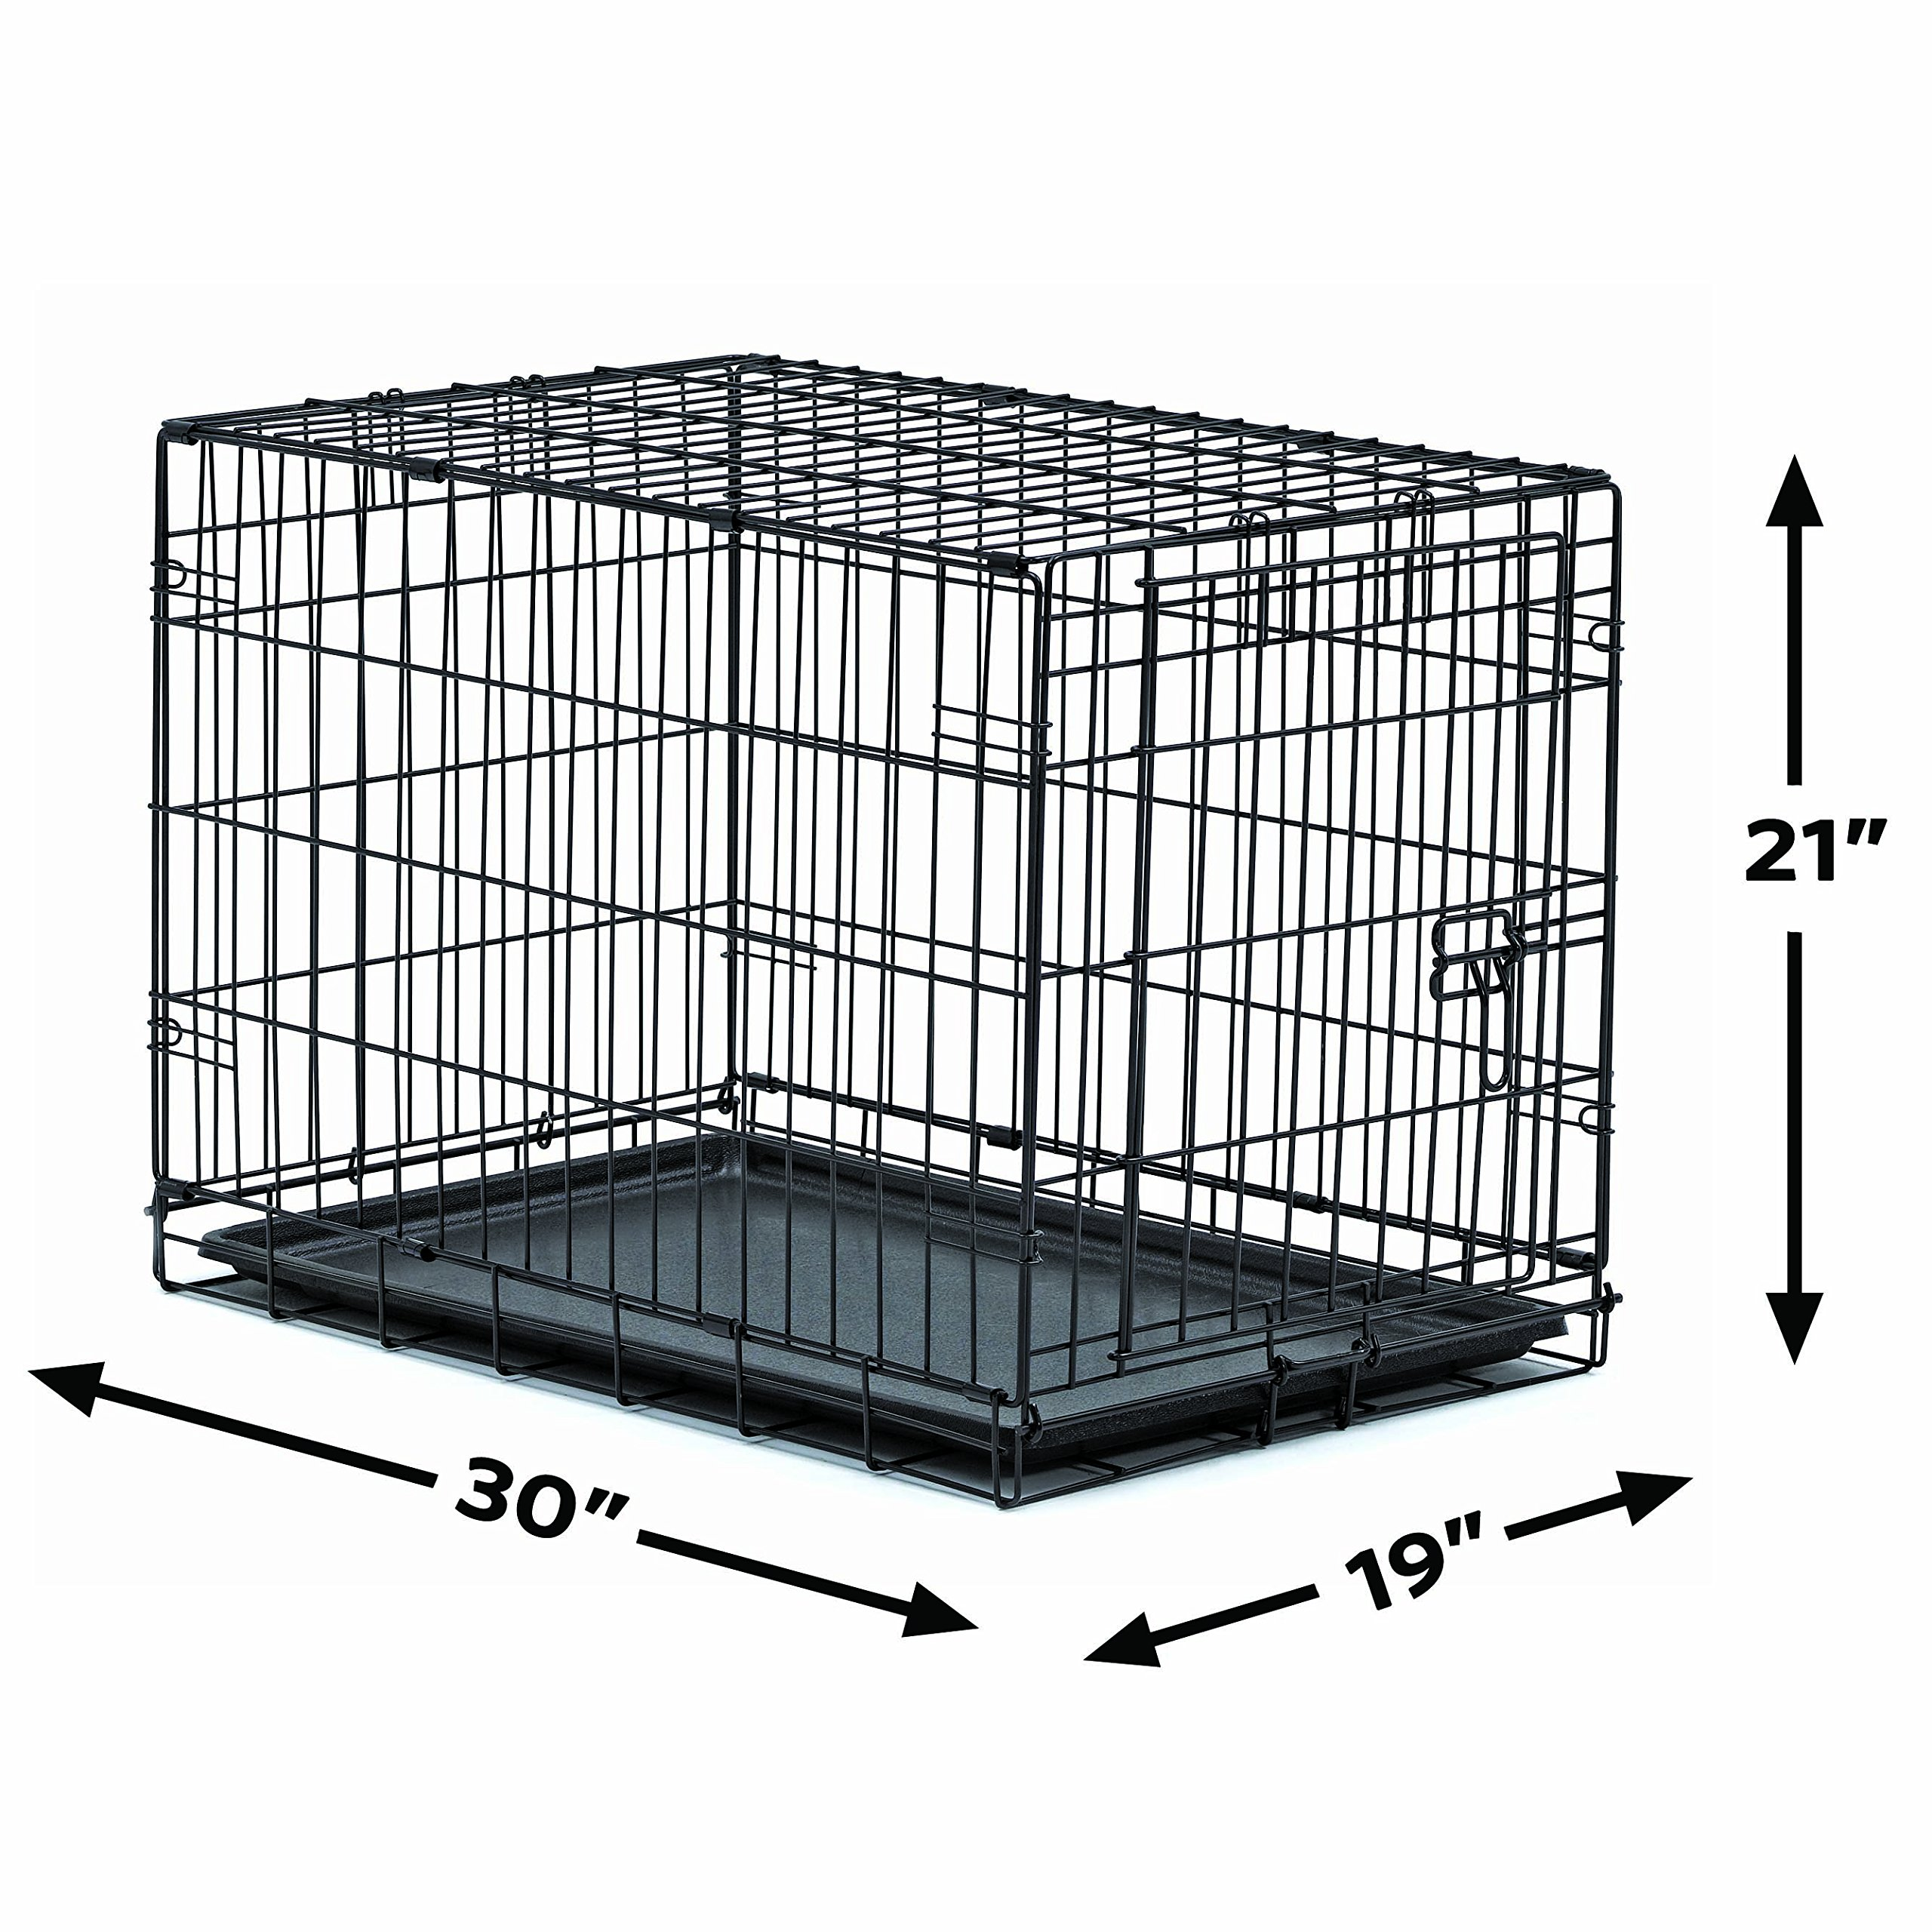 New World 30'' Folding Metal Dog Crate, Includes Leak-Proof Plastic Tray; Dog Crate Measures 30L x 19W x 21H Inches, For Medium Dog Breeds by New World Crates (Image #4)